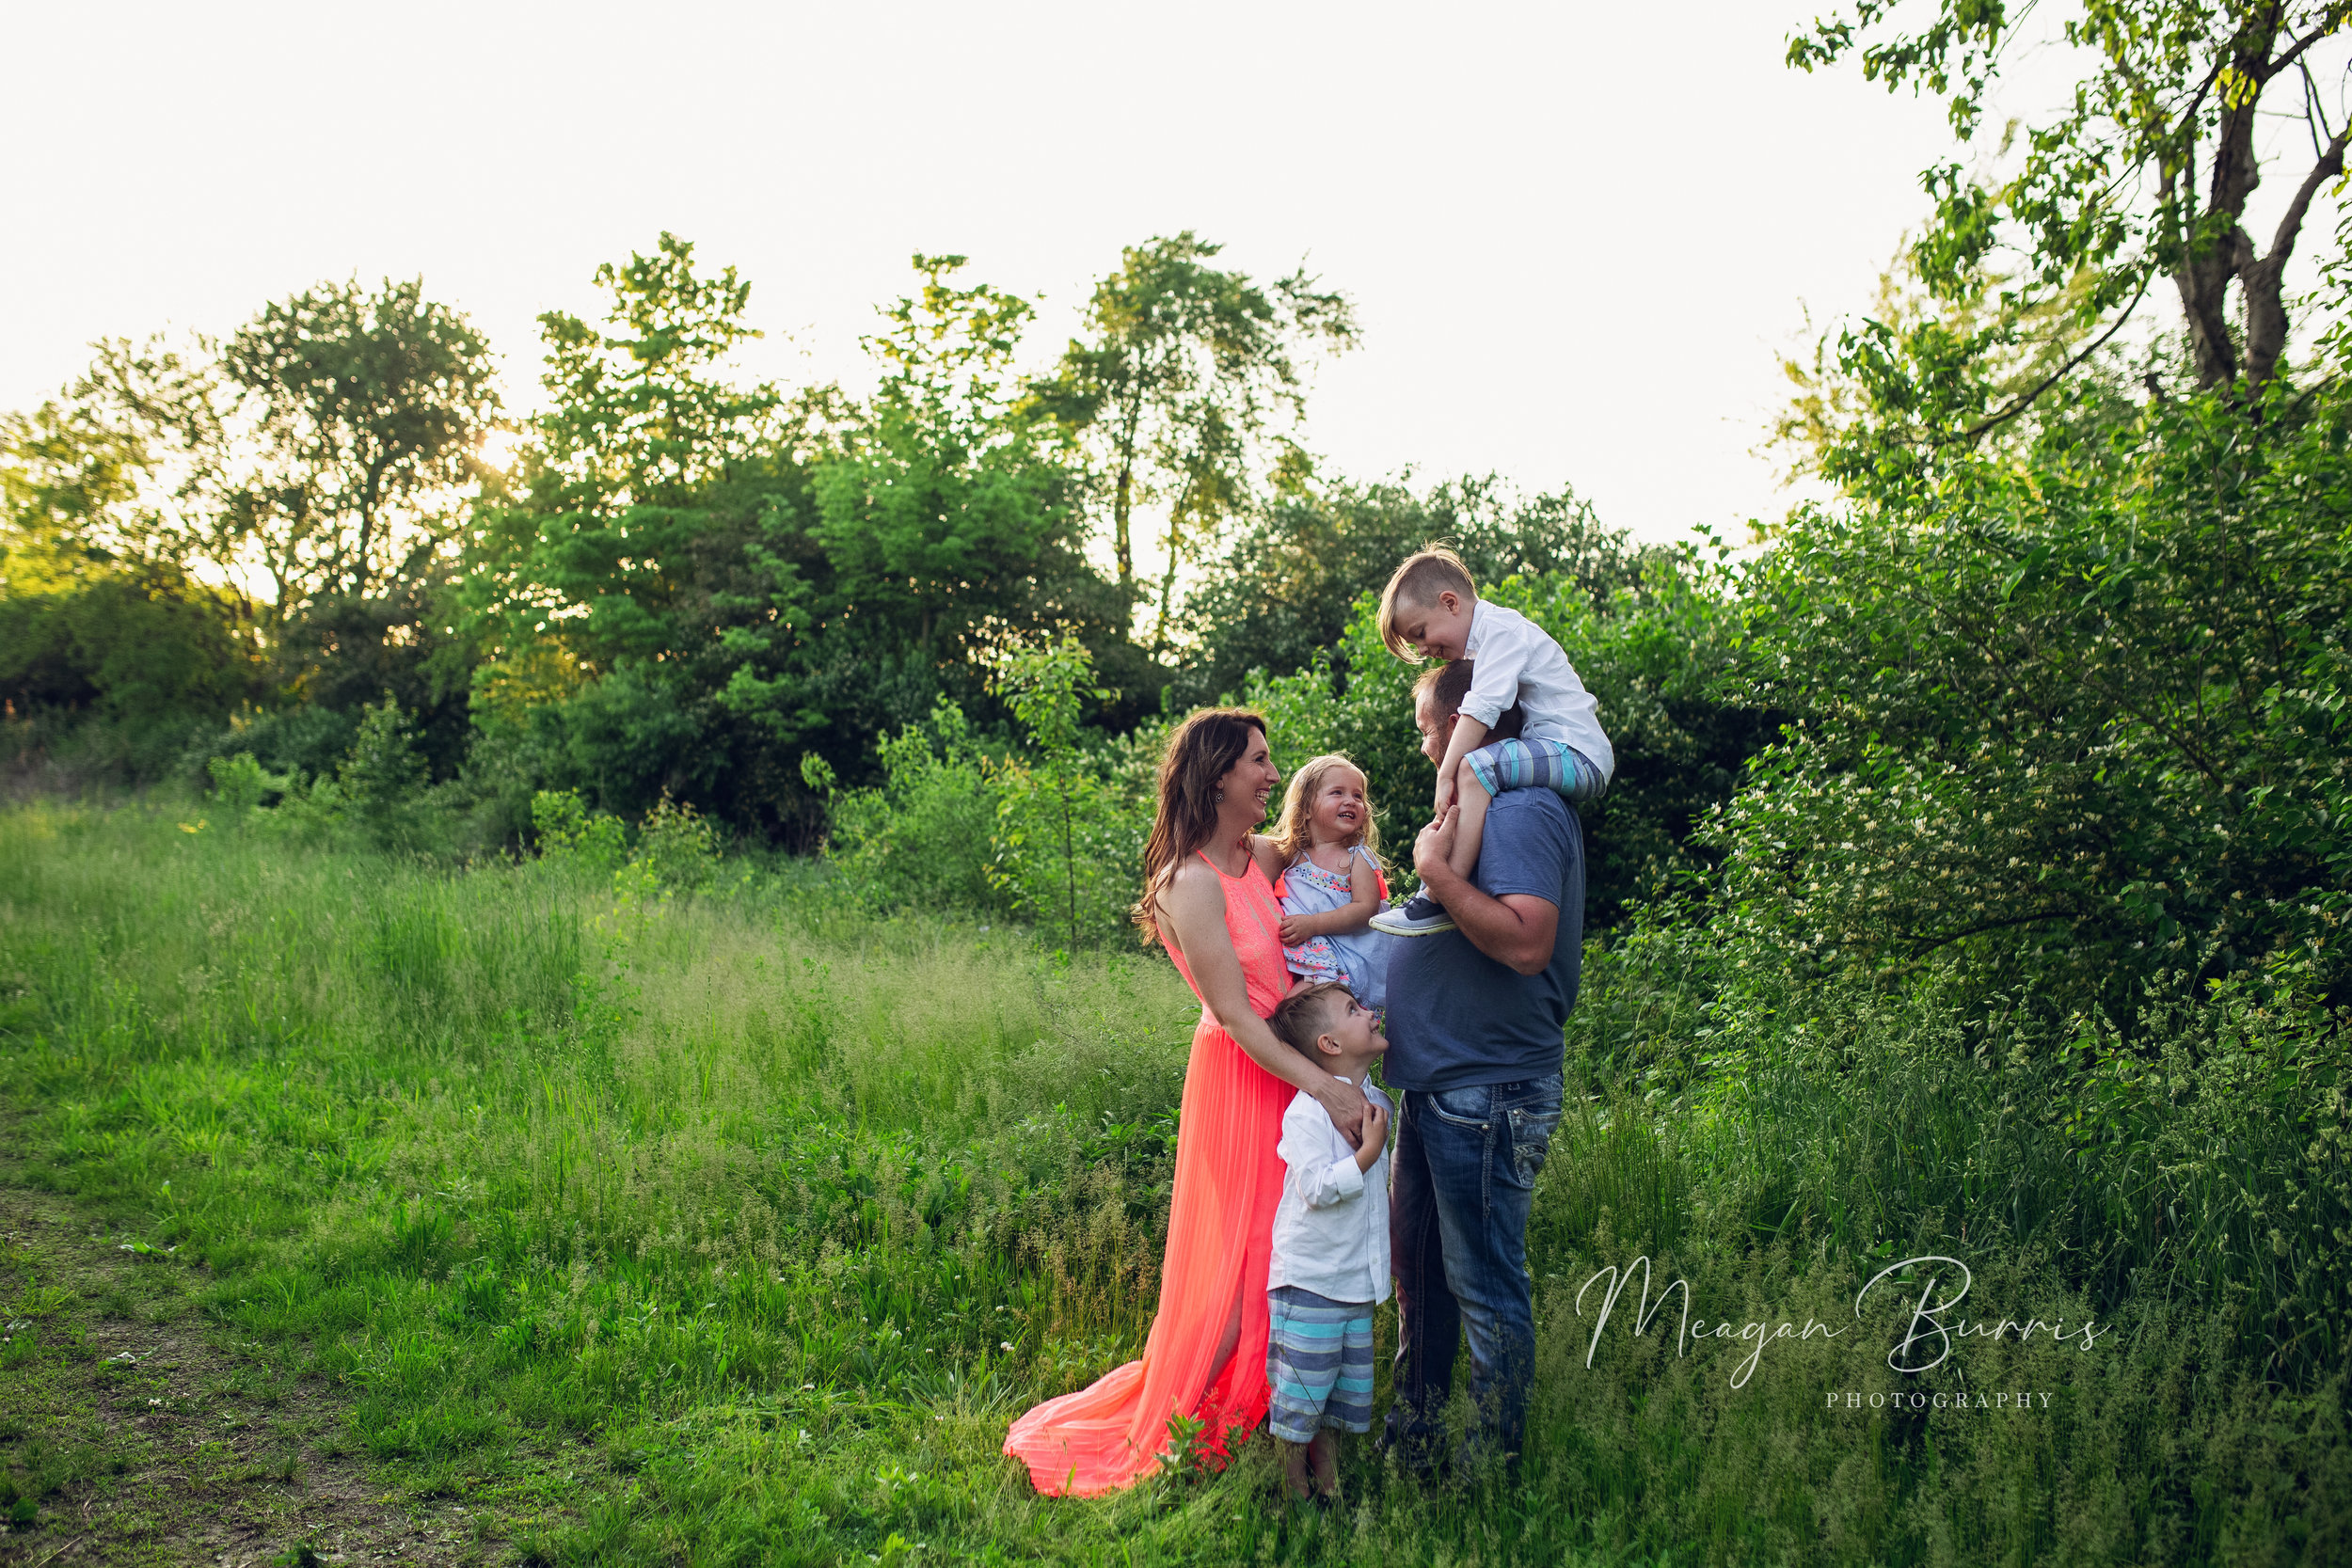 ennis_greenfield family photographer6.jpg